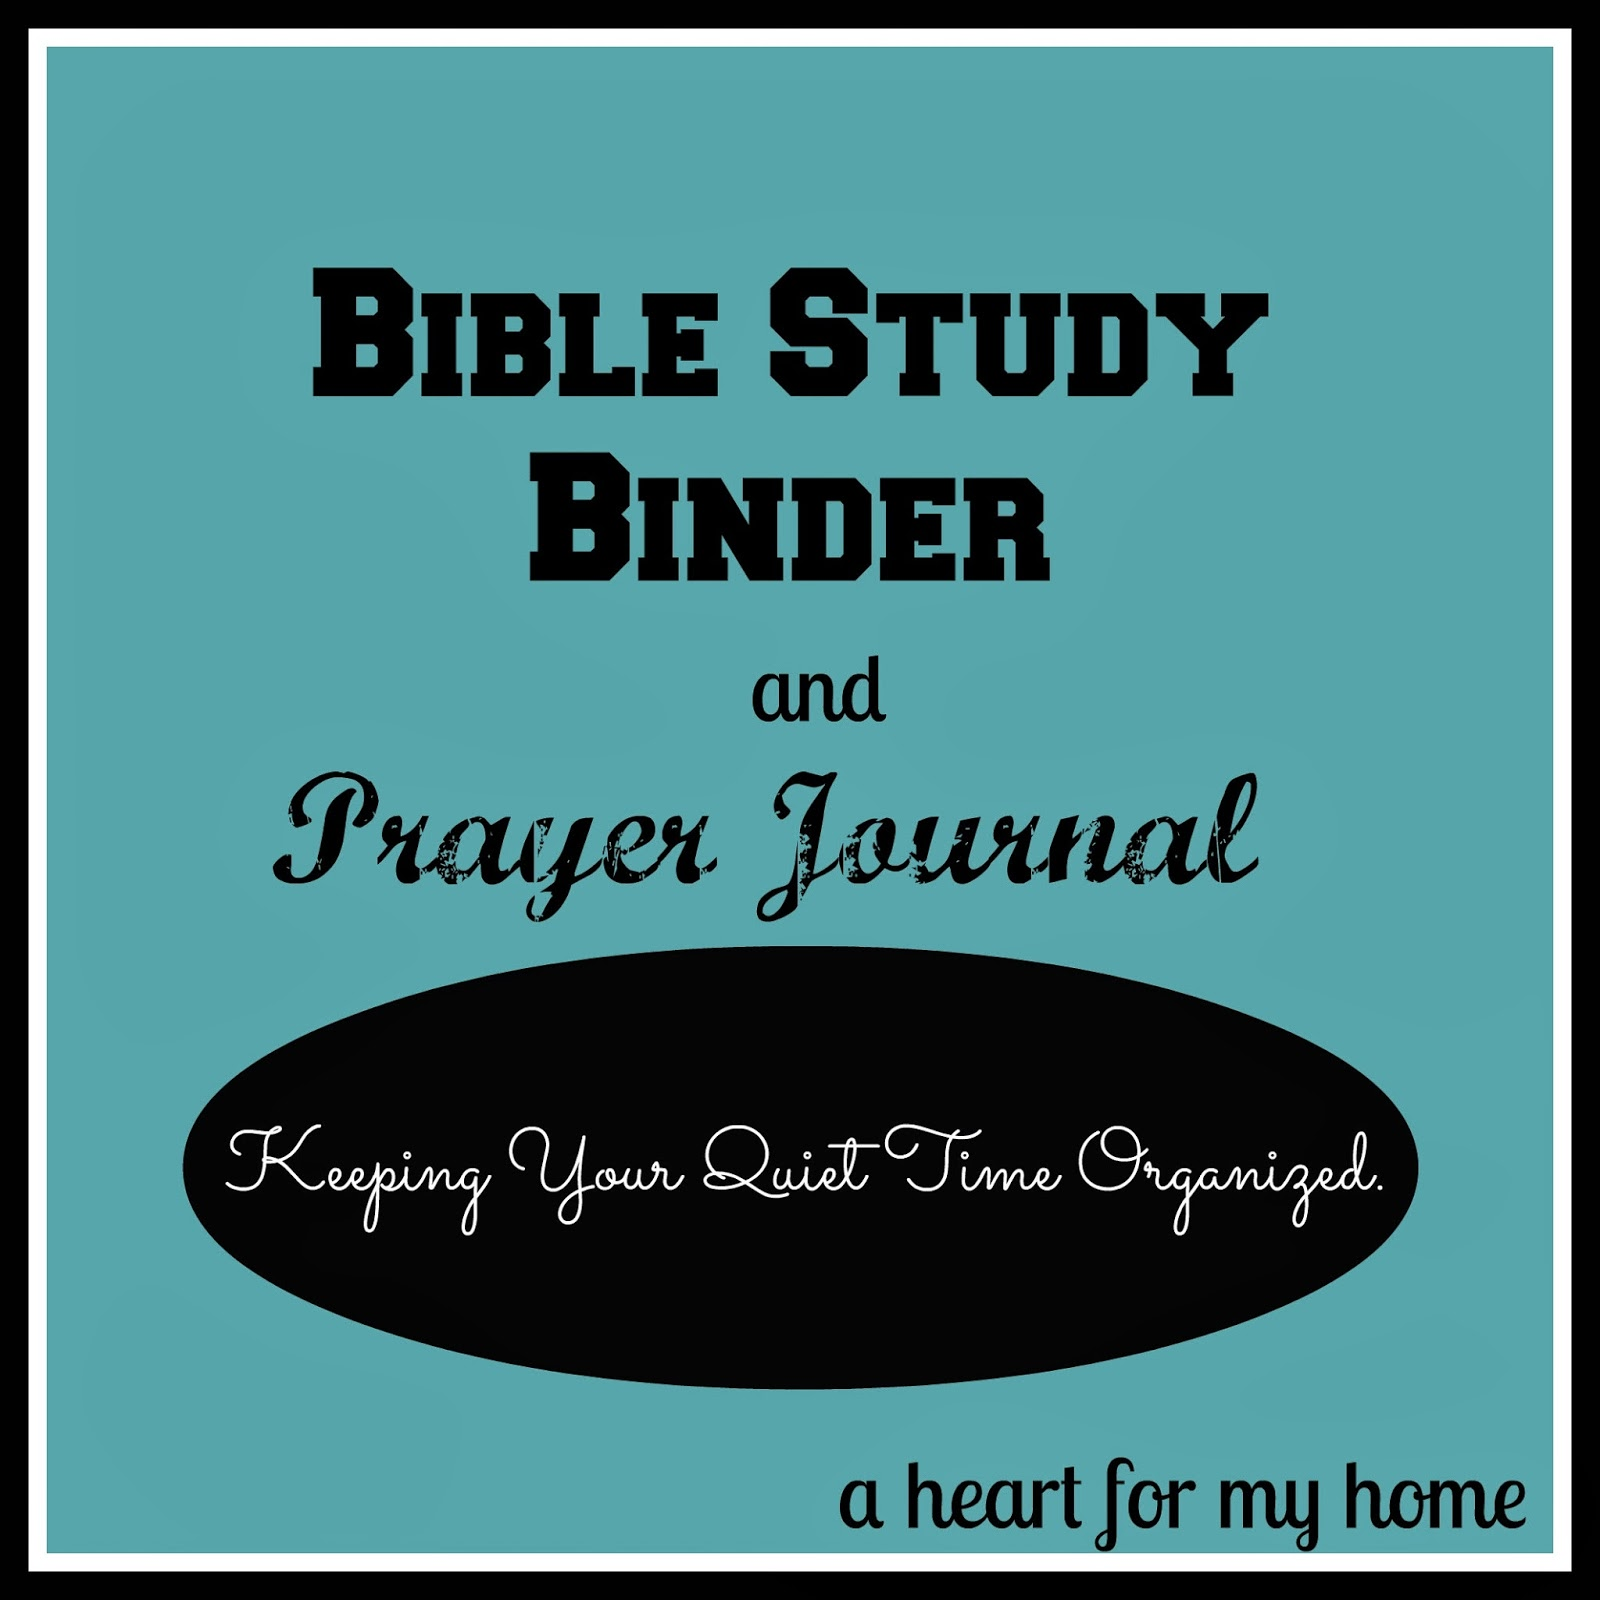 A Heart For My Home: Bible Study Organization